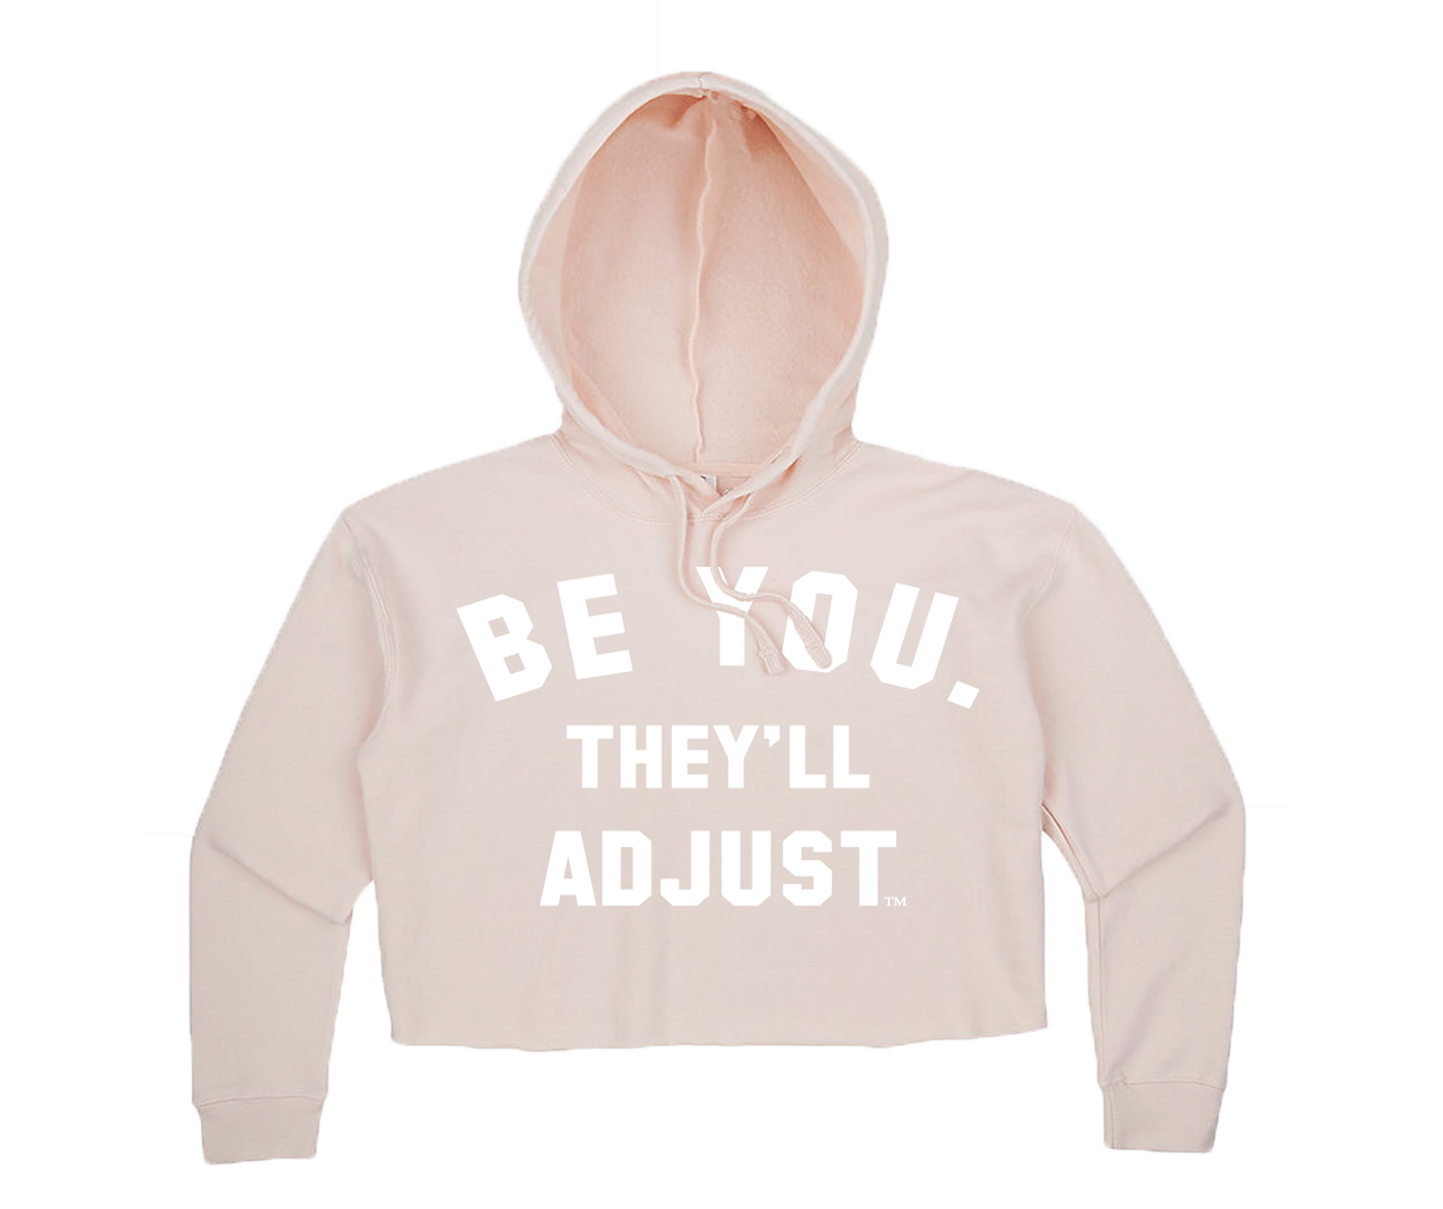 Be You.They'll Adjust Crop top hoodie